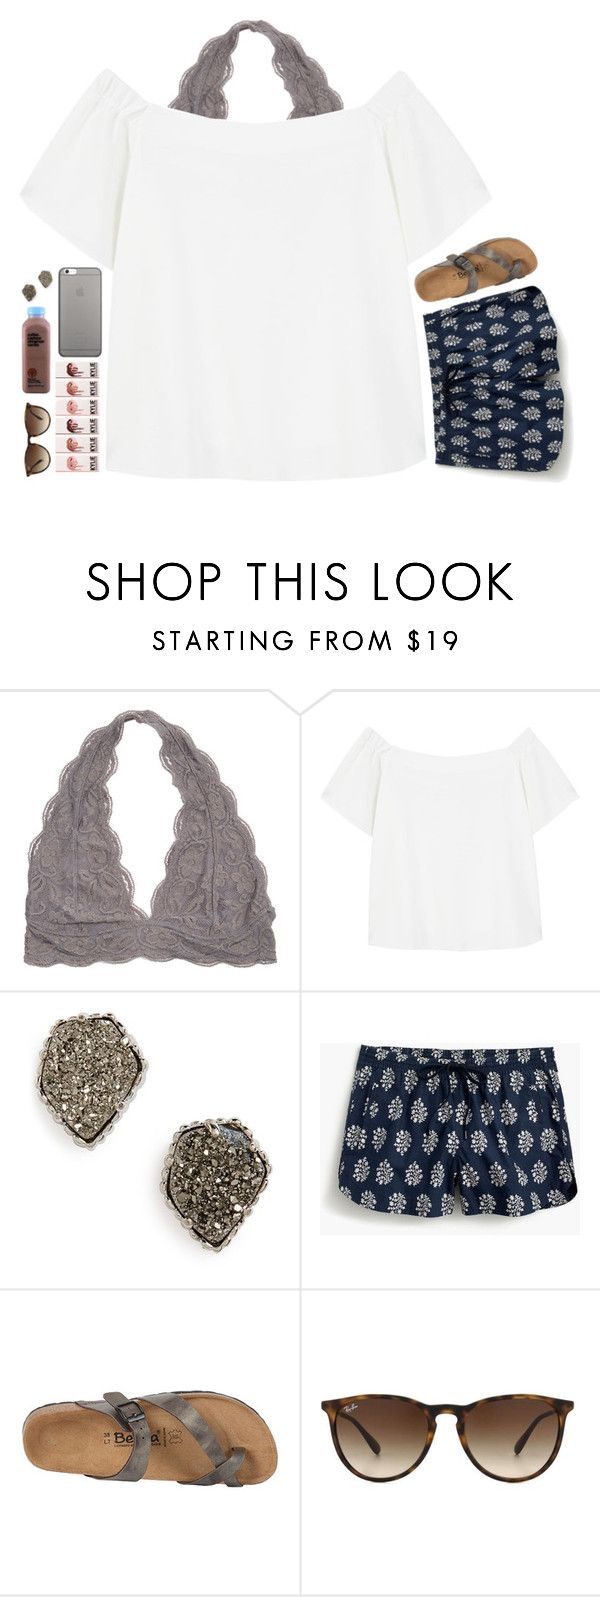 """ugh"" by julesamber ❤ liked on Polyvore featuring MANGO, Kendra Scott, J.Crew, Betula, Ray-Ban and Native Union"